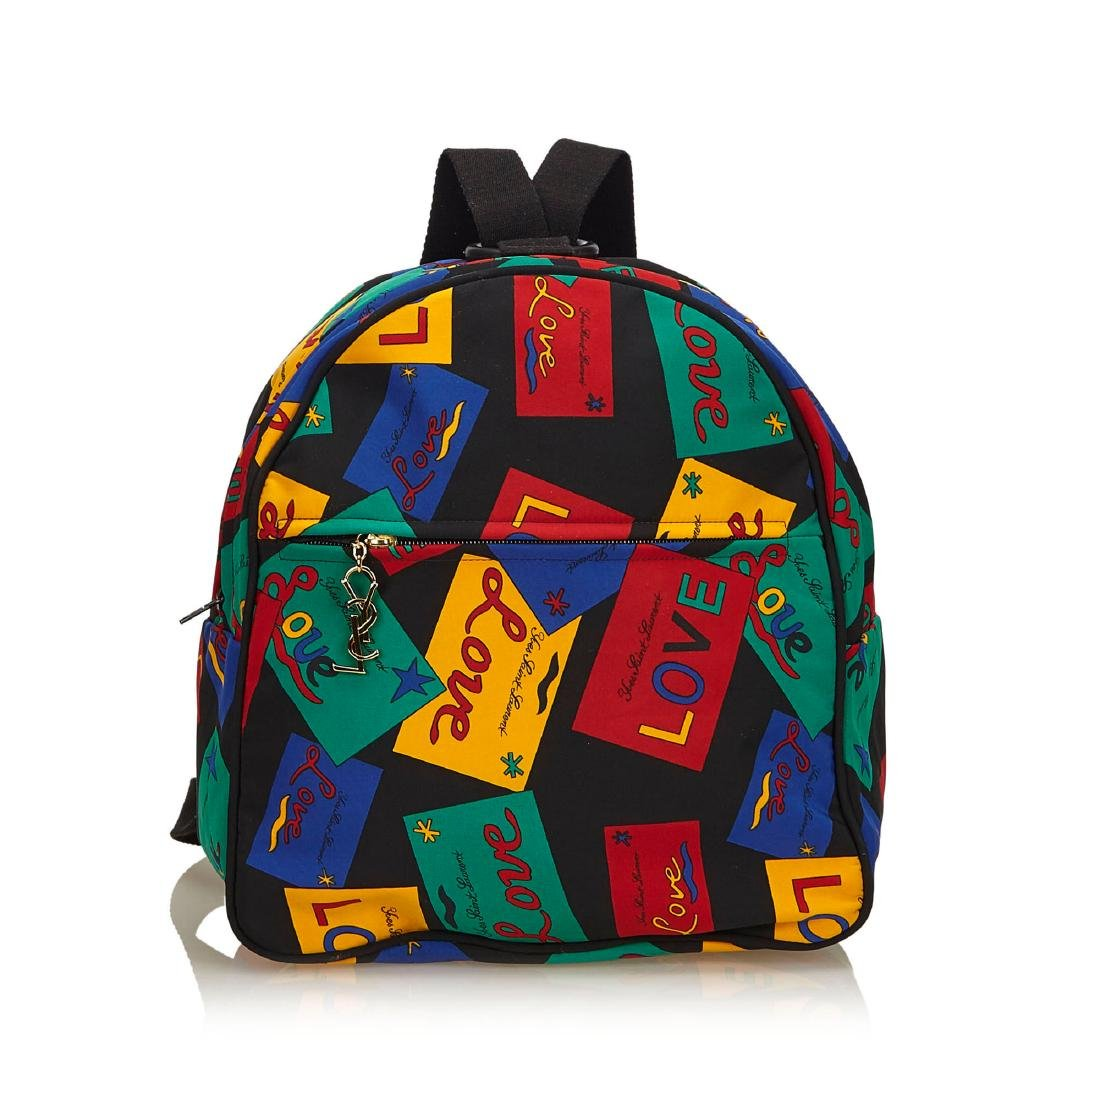 YSL Love Printed Nylon Backpack